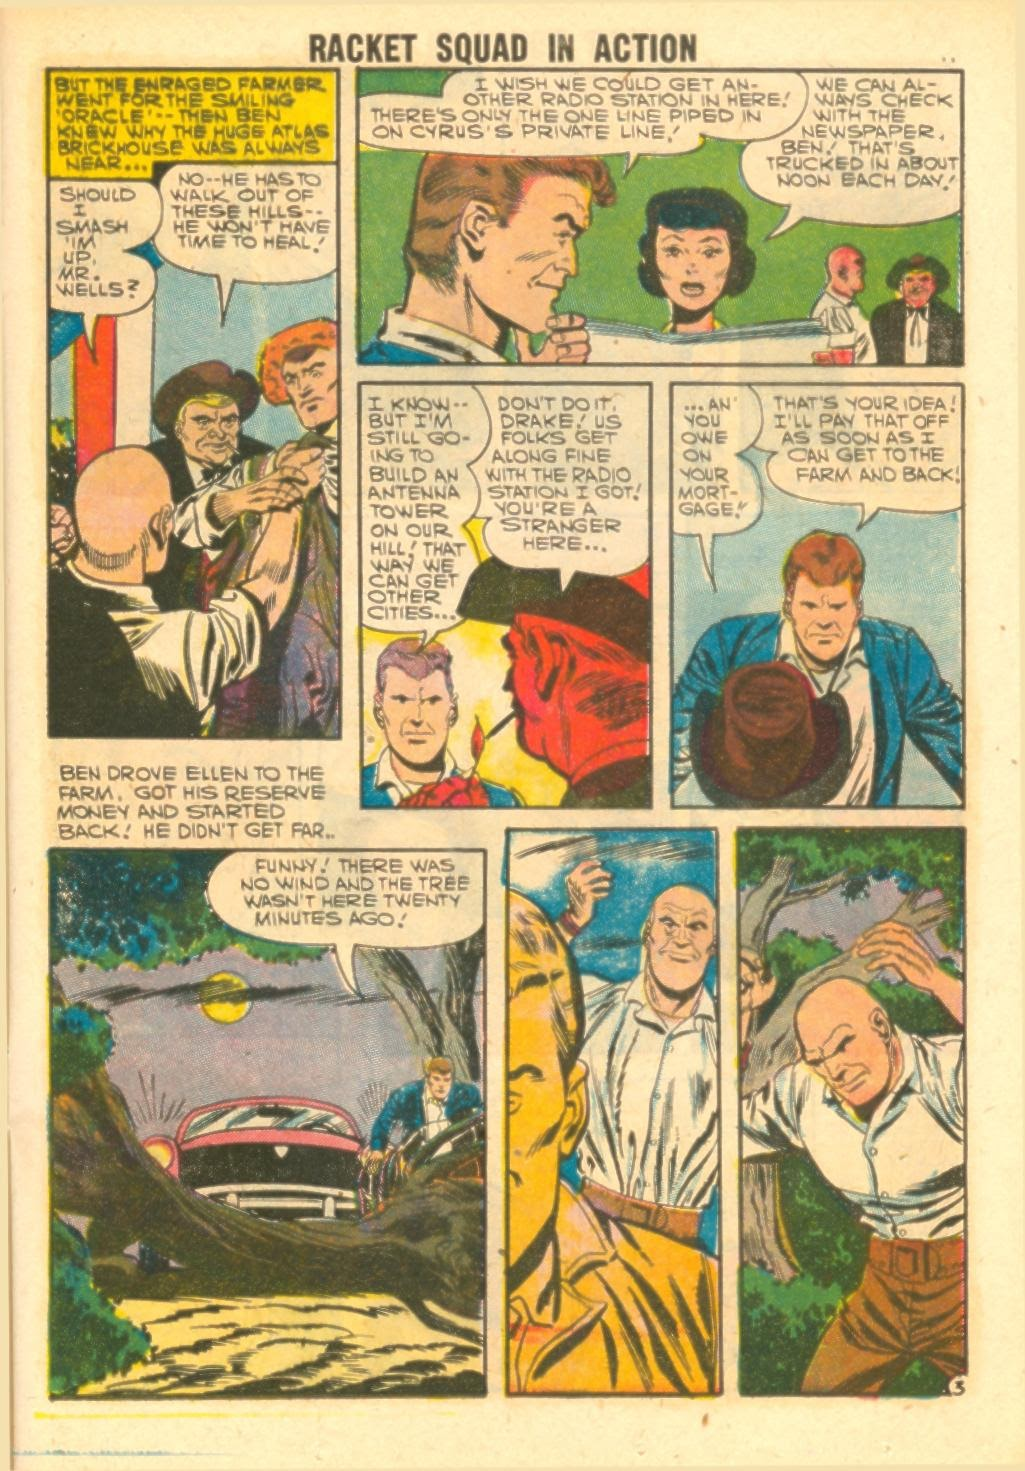 Read online Racket Squad in Action comic -  Issue #26 - 13